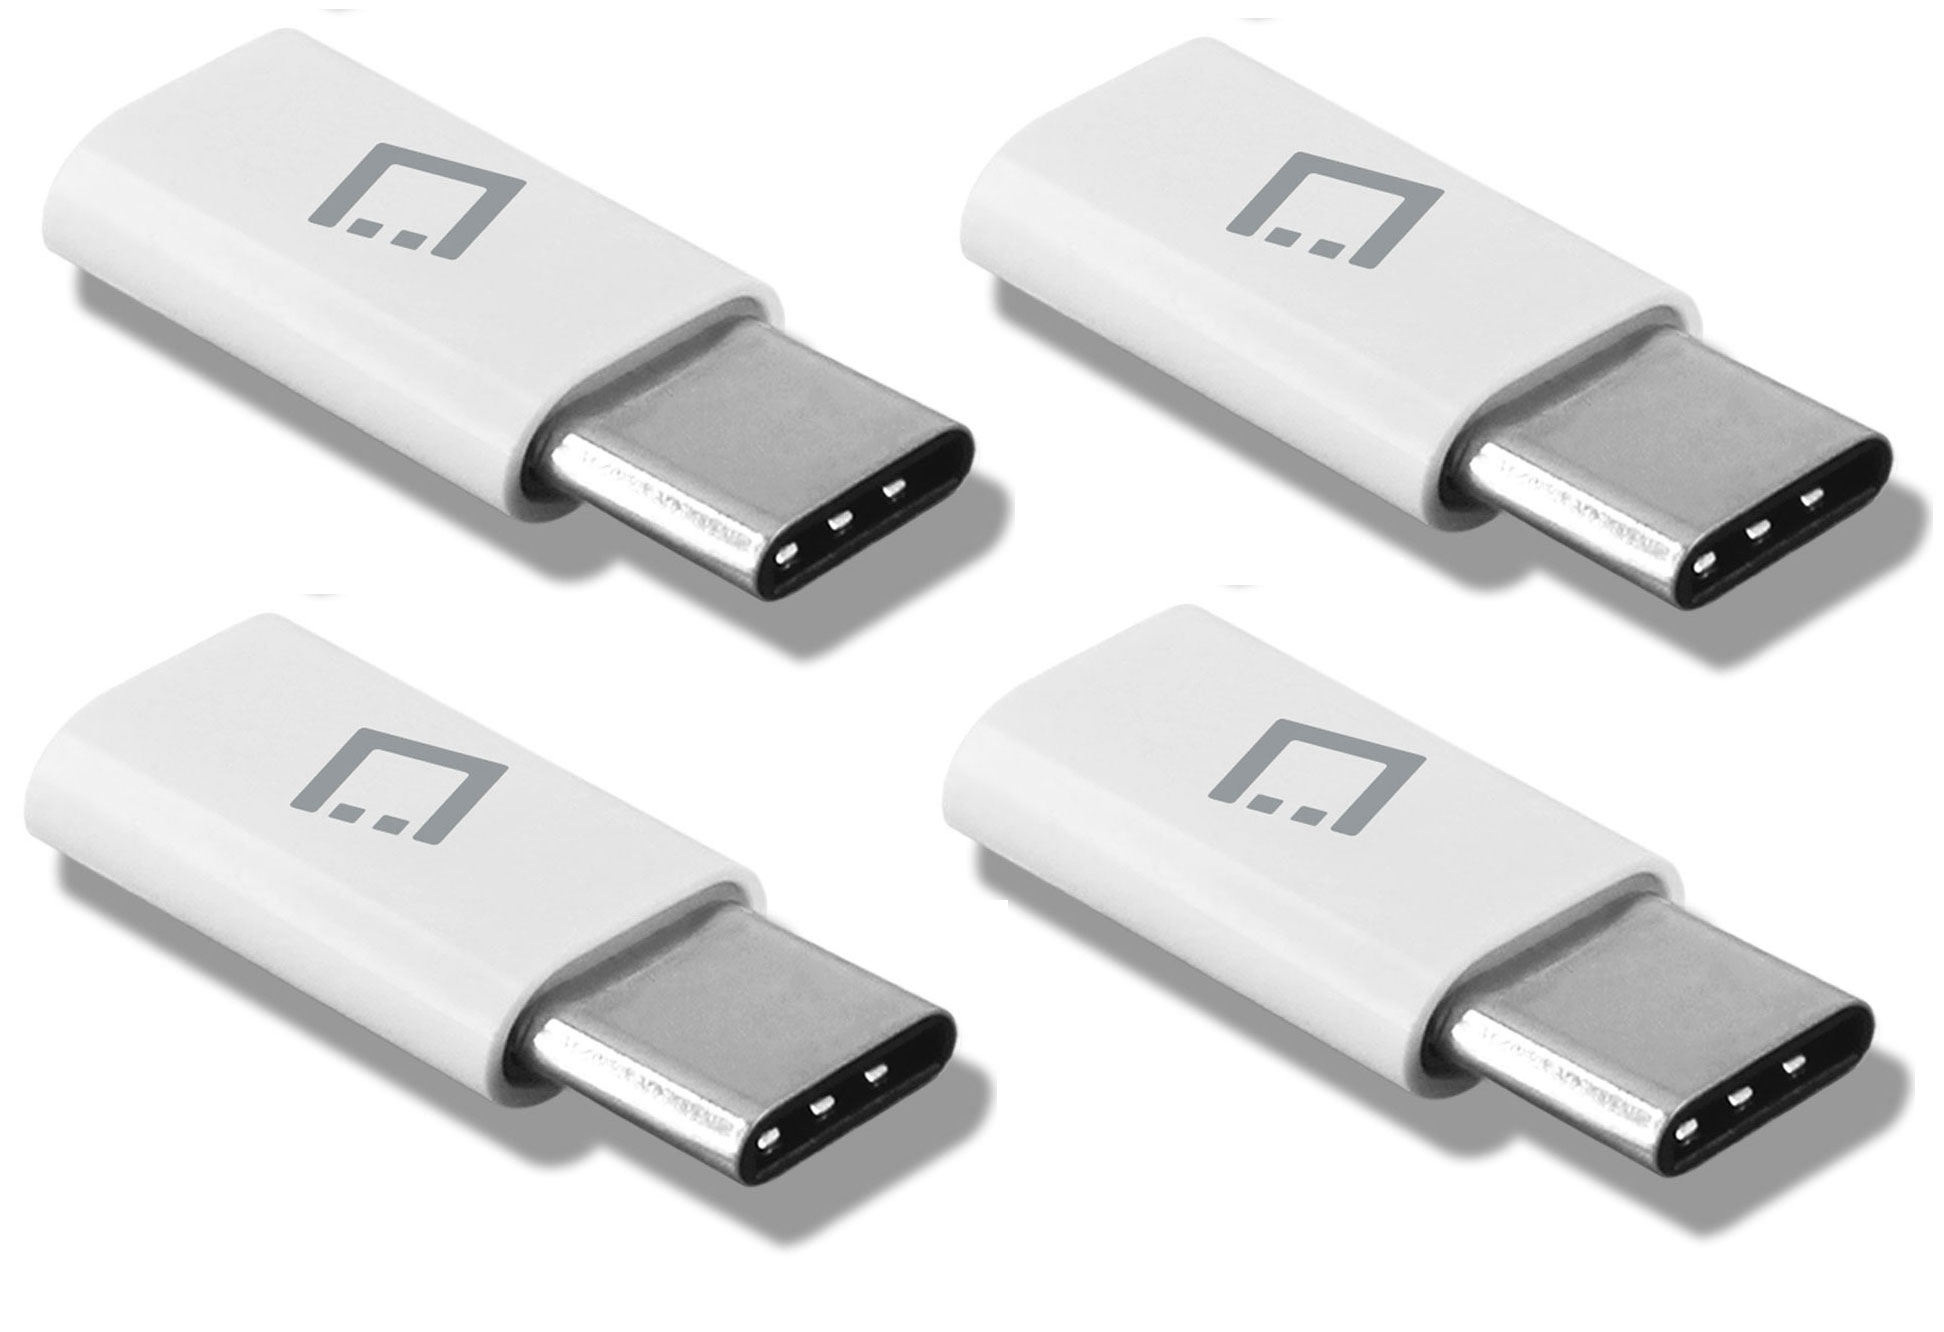 LG Stylo 6 MicroUSB to USB Type-C Adapter White Pack Of 4